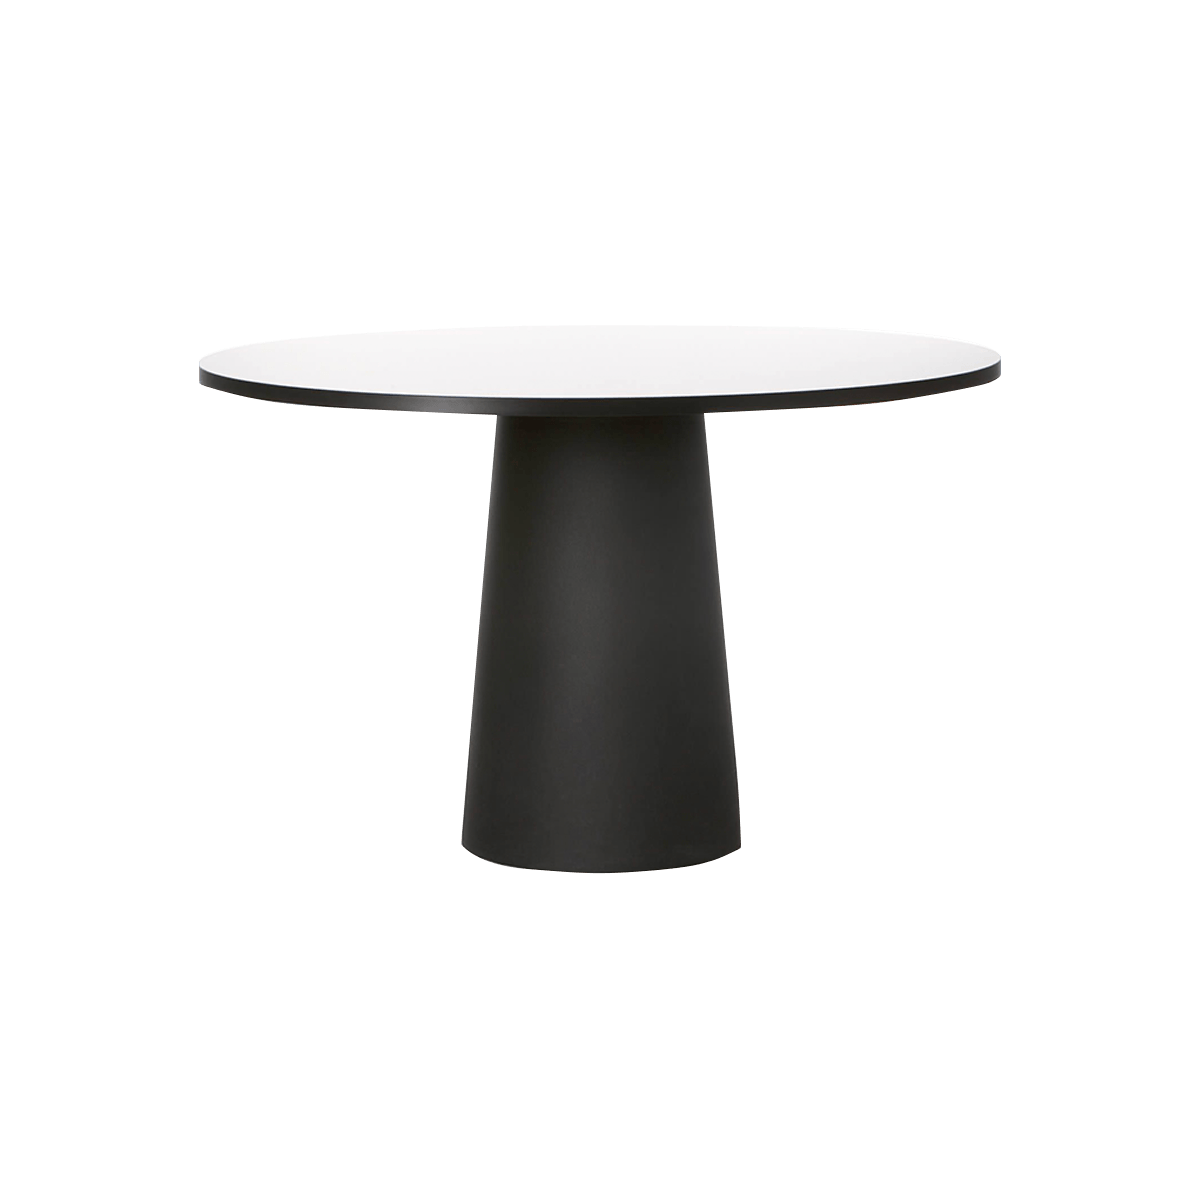 Moooi  Container Table 7143 桌子